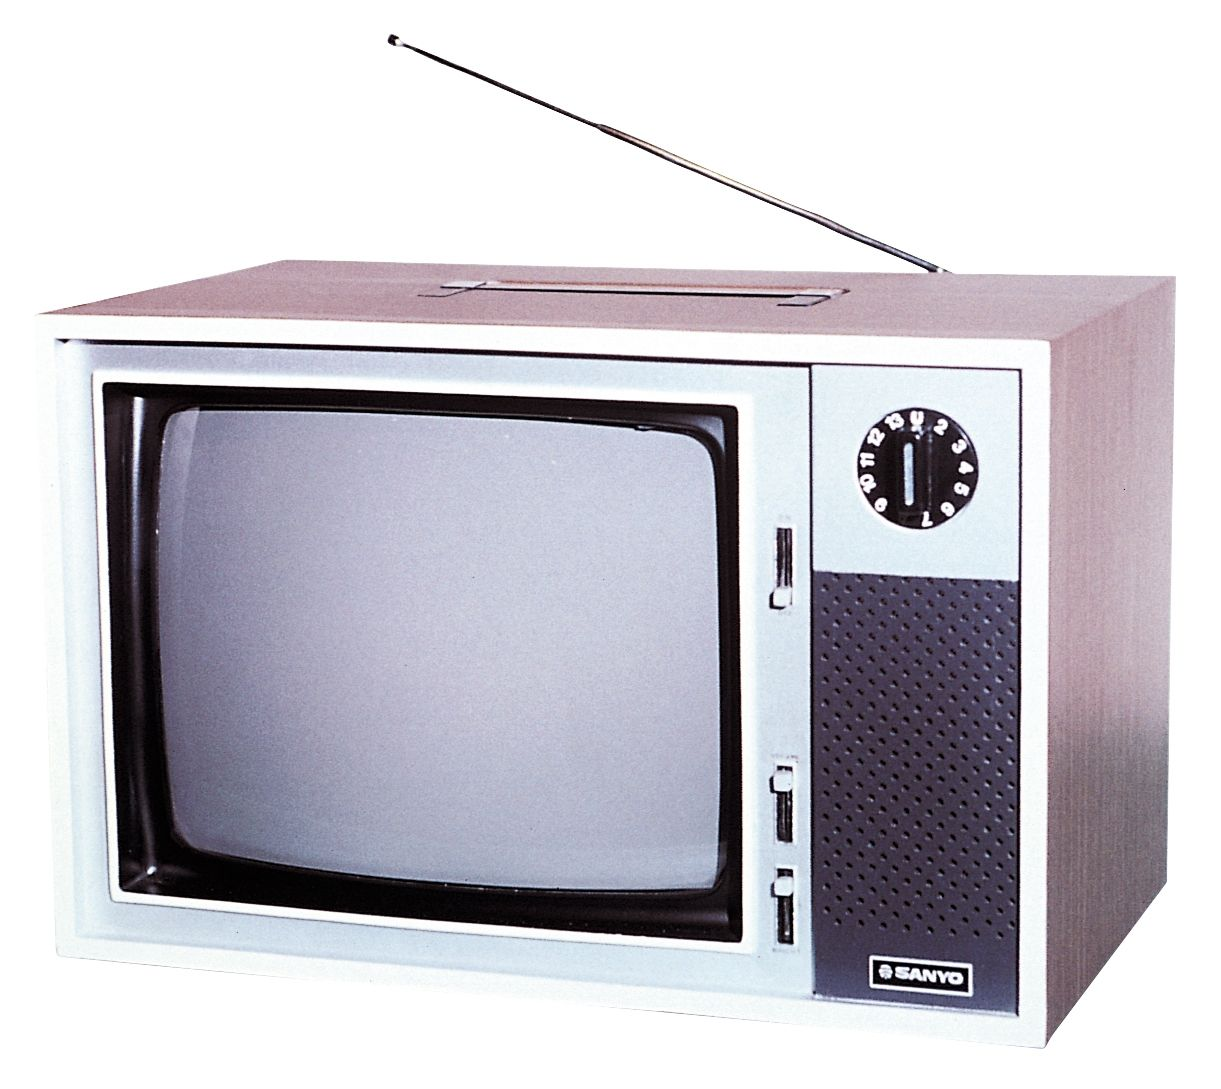 1970 Samsung S Very First Tv Was A 12 Inch Vacuum Tube Black And